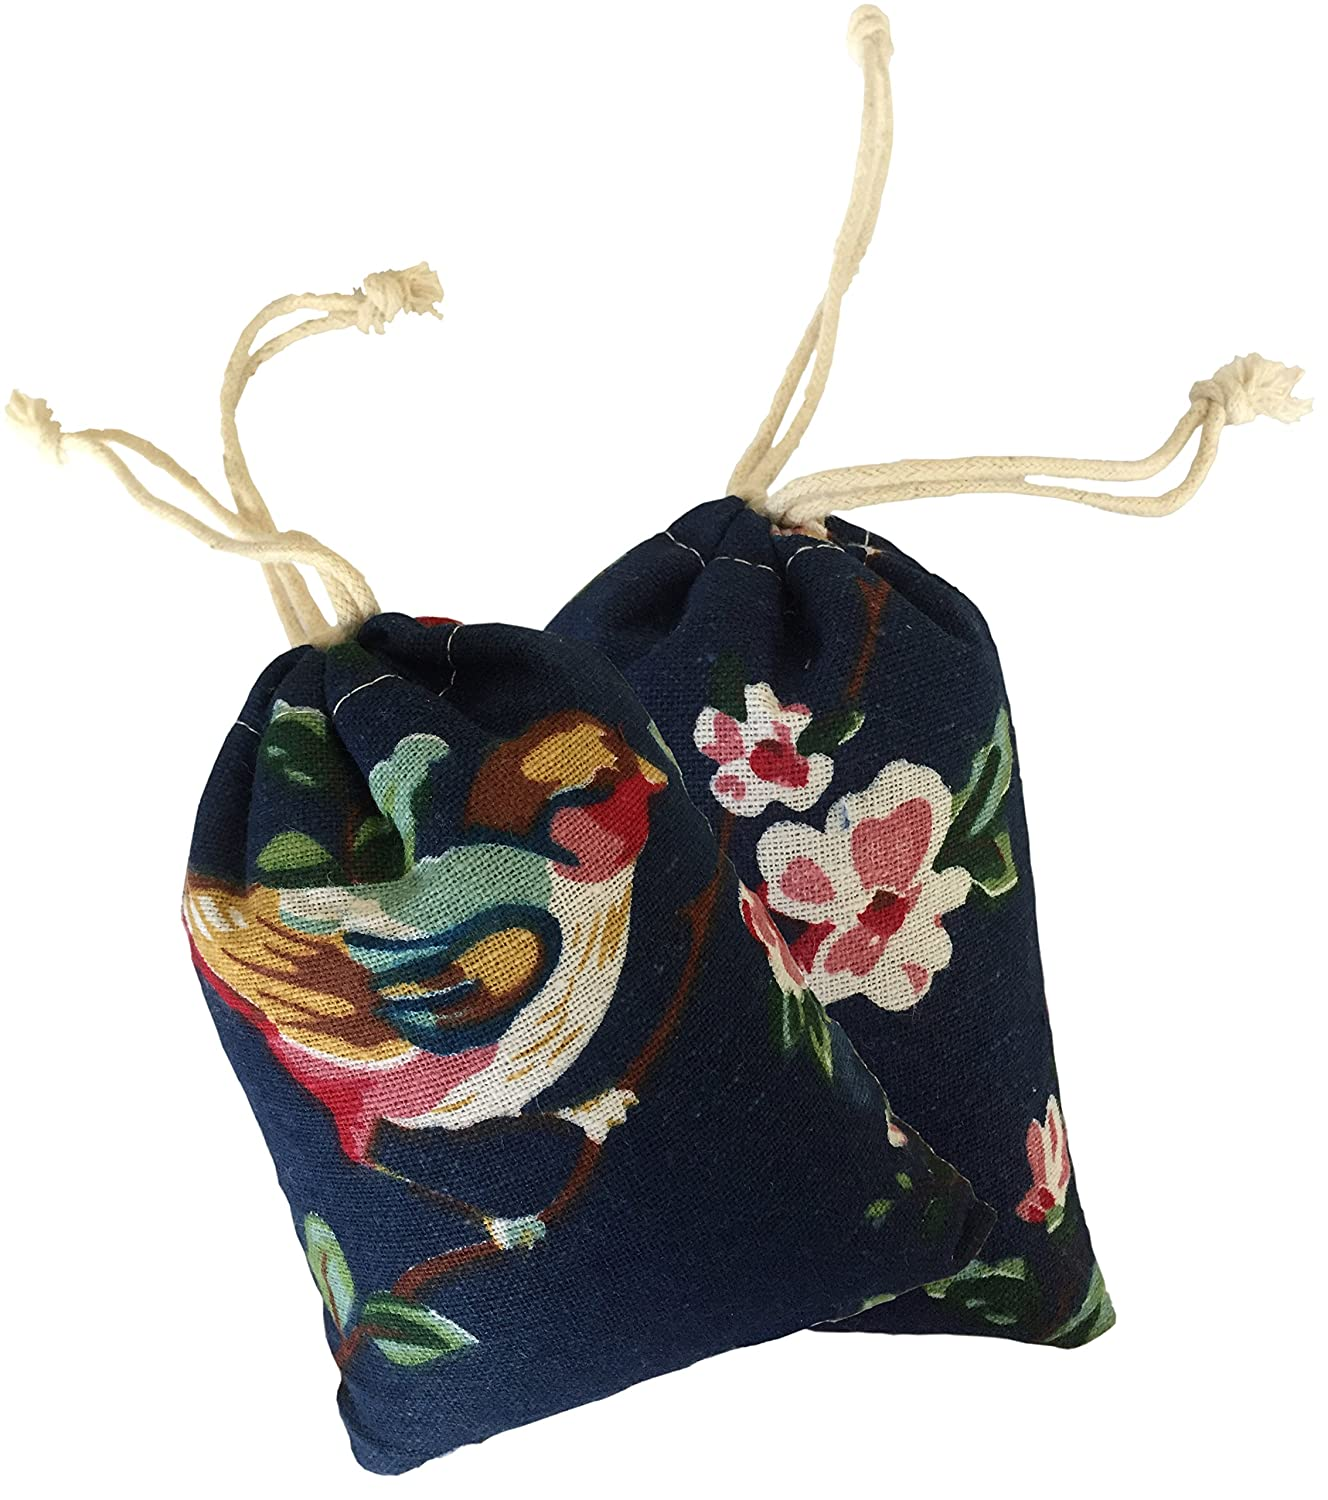 Purifying Bags Can Be Used to Store Christmas Decorations to Preserve Quality During the Year, Will Dry Damp Fabric in Cars, Filter Air near Showers and Toilets, Can be Reactivated, Petite Bouncy Bird Sorbent Media Inc.